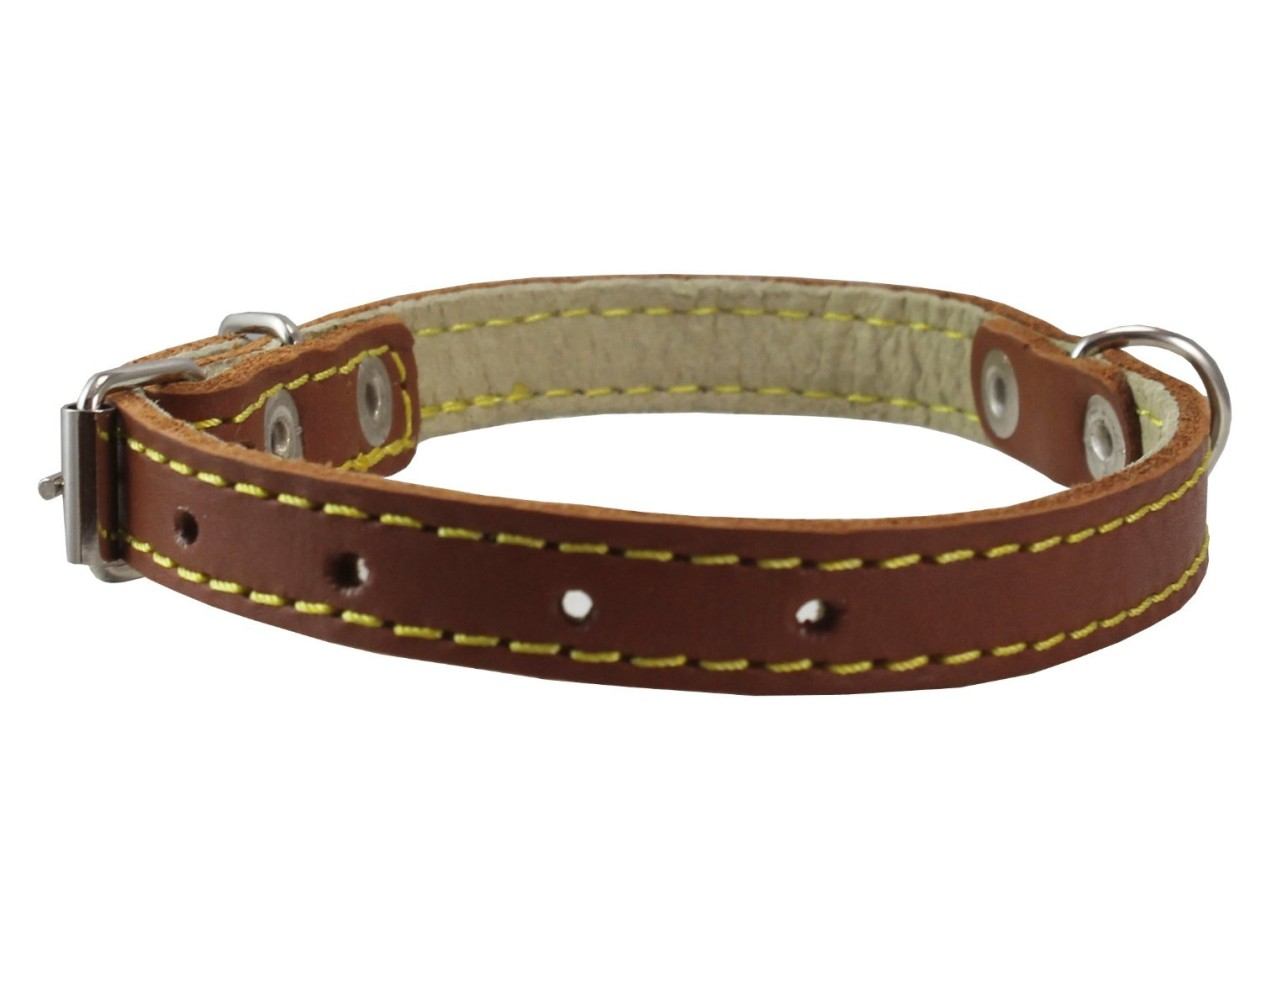 chihuahua collars genuine leather dog collar 9 5 quot 13 quot neck size 1 2 quot wide 9913